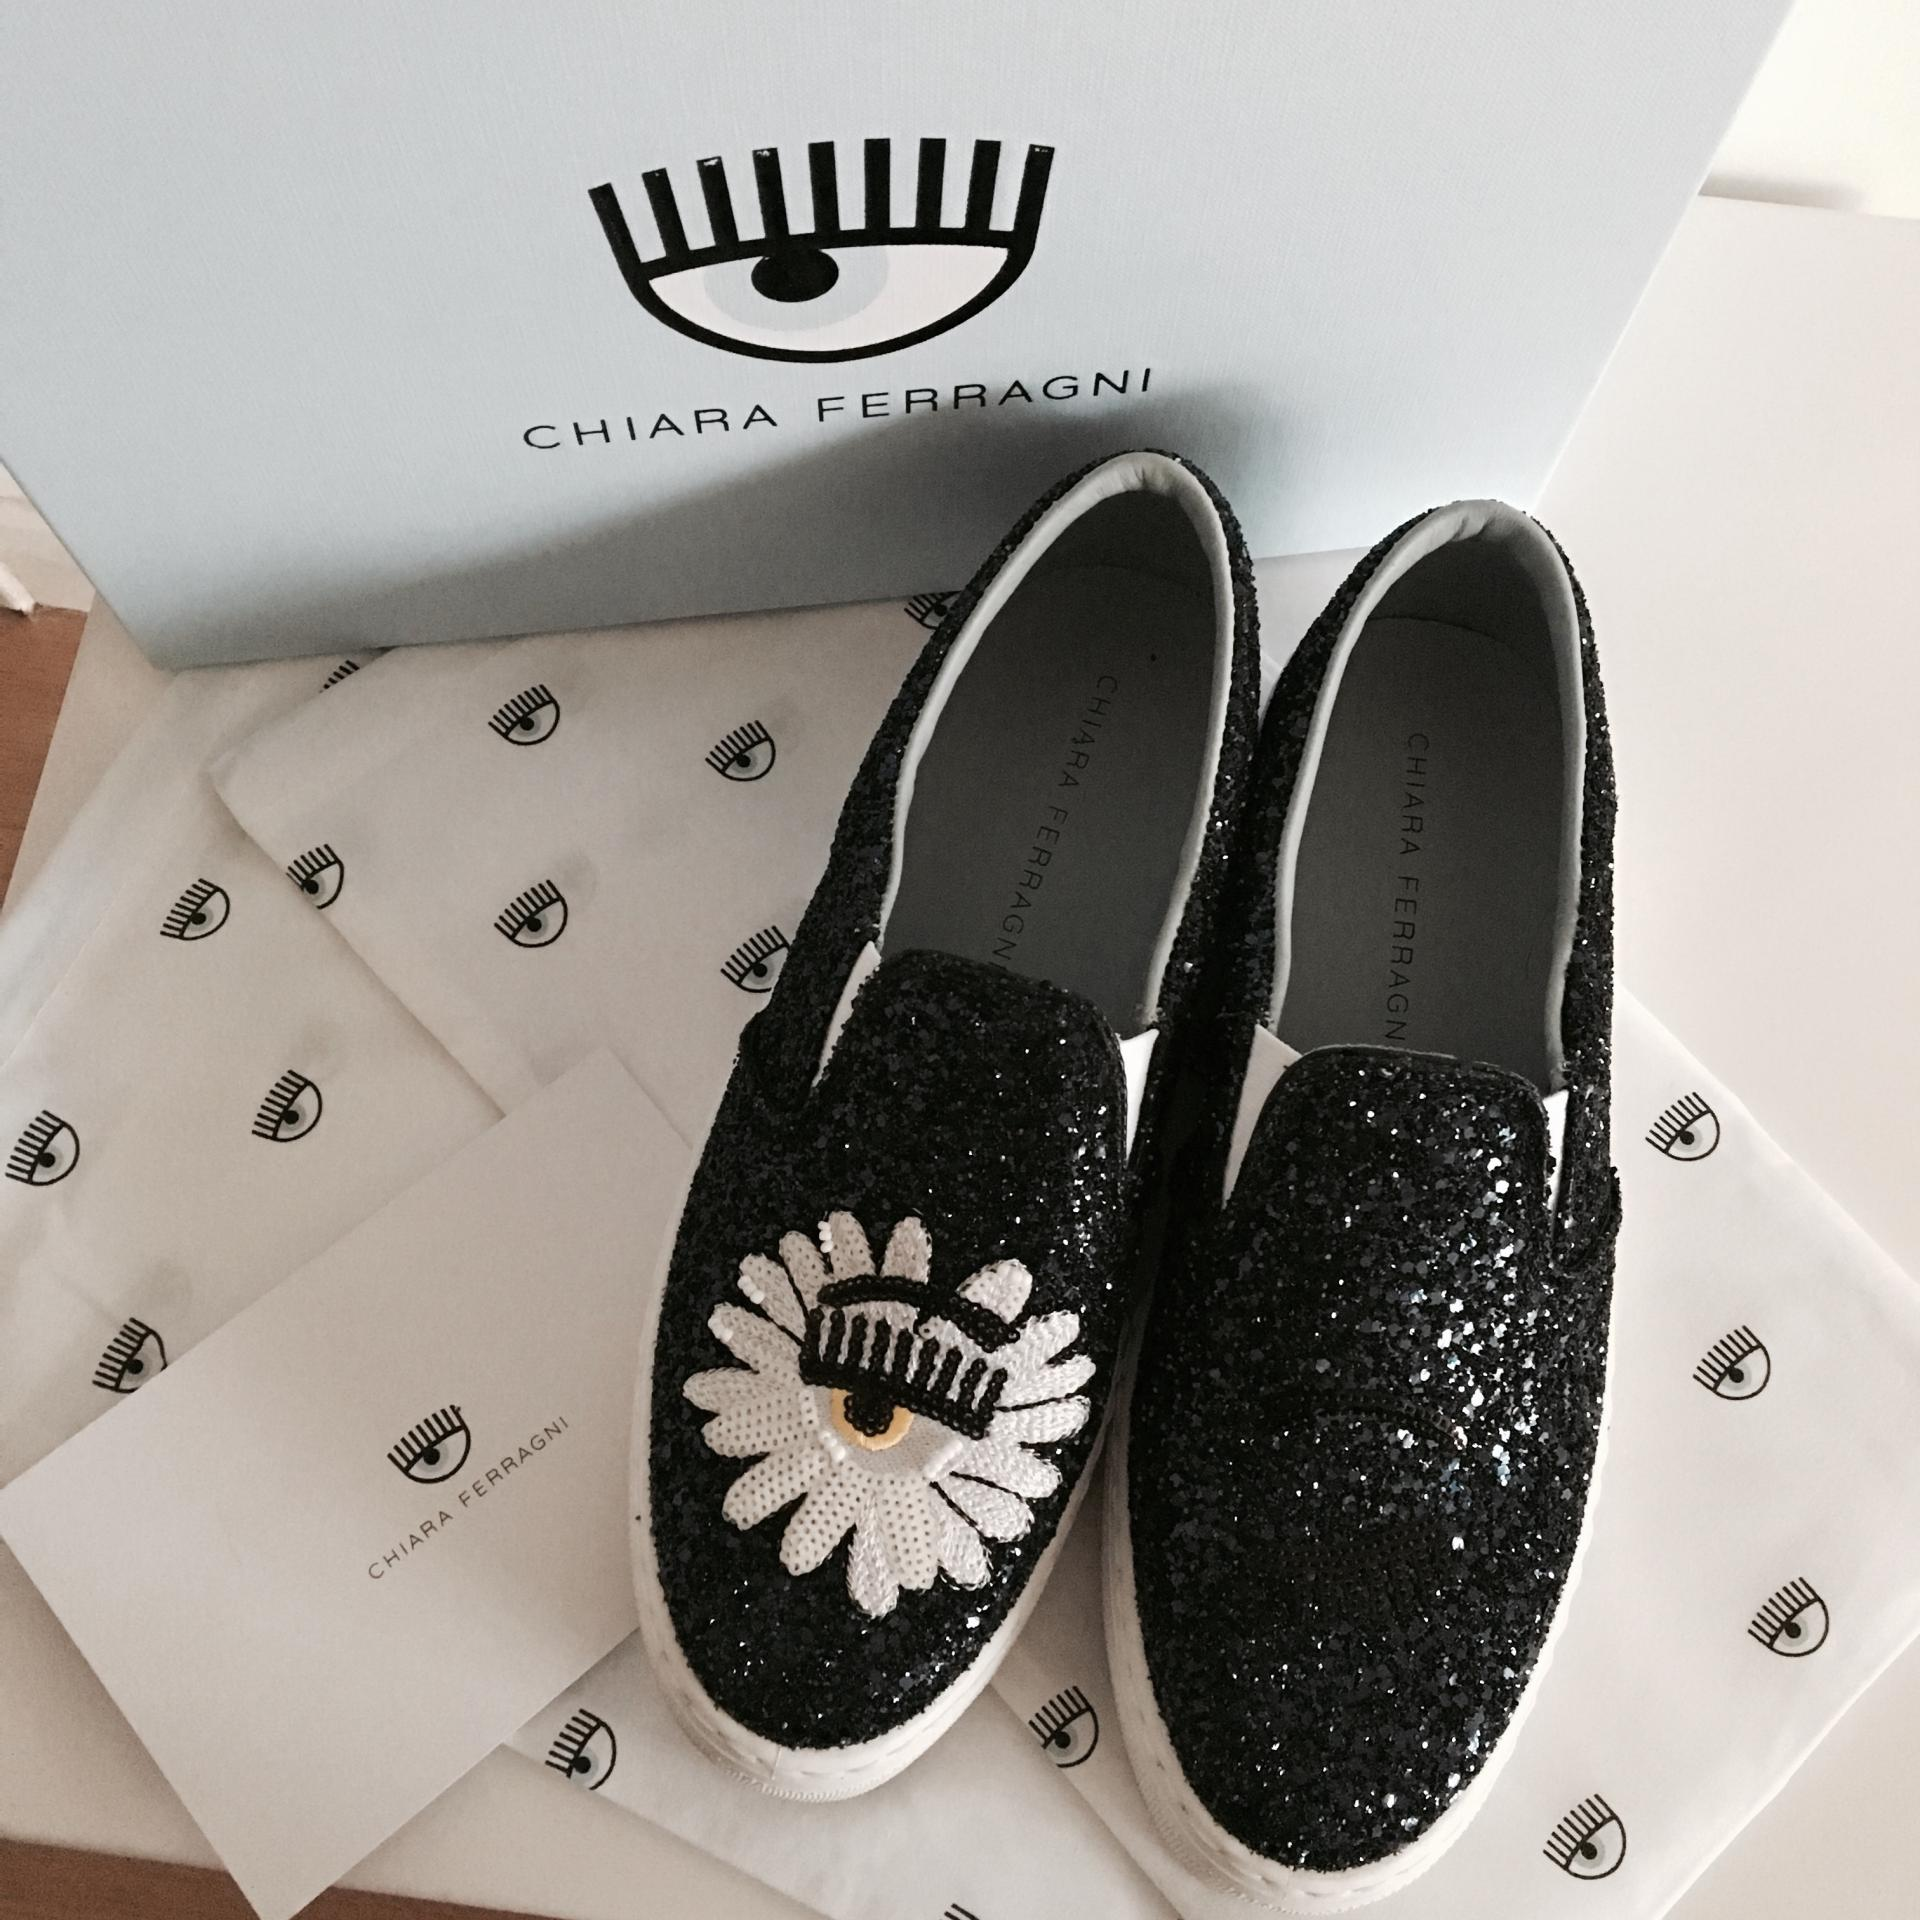 Sharefashion - Chiara Ferragni Shoes